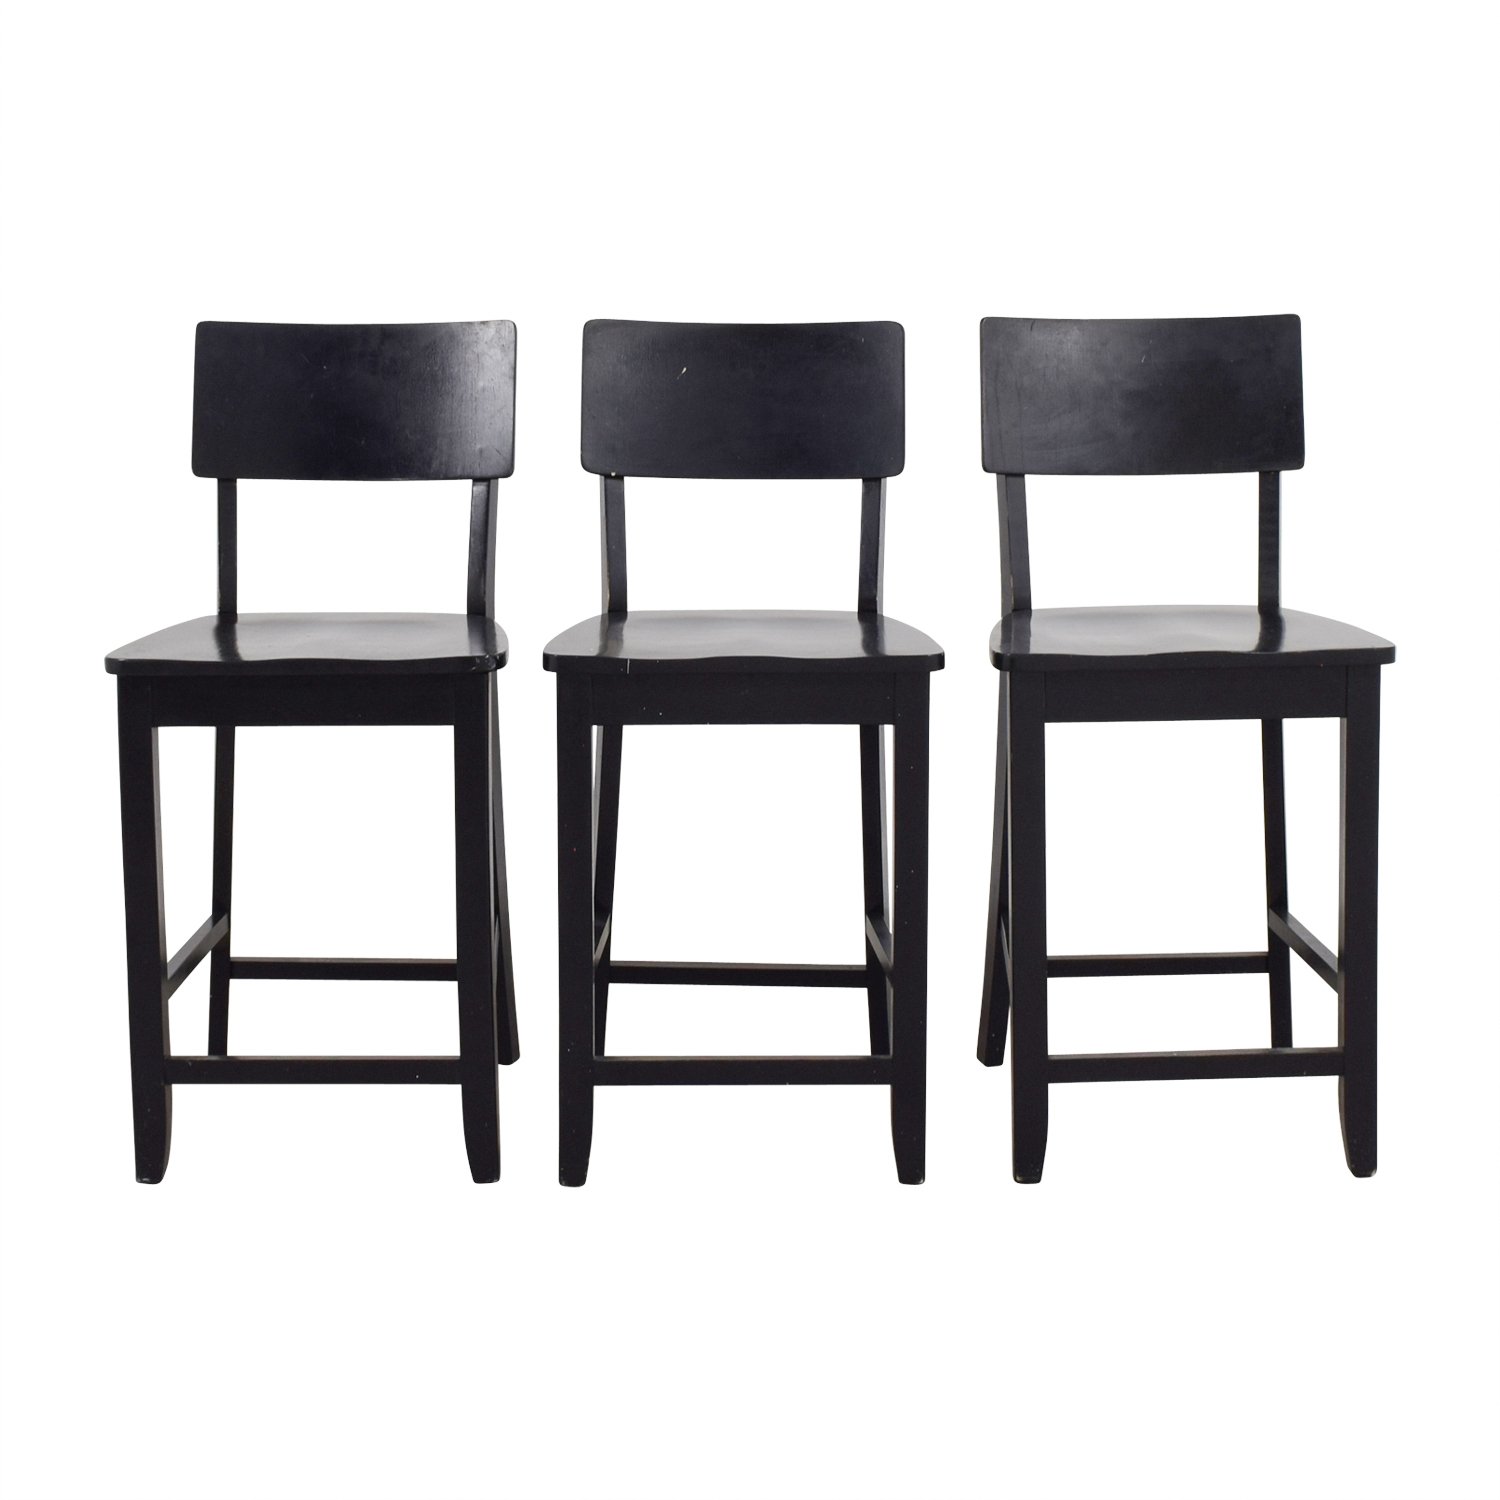 Awesome 74 Off Crate Barrel Crate Barrel Black Wood Bar Stools Chairs Gmtry Best Dining Table And Chair Ideas Images Gmtryco